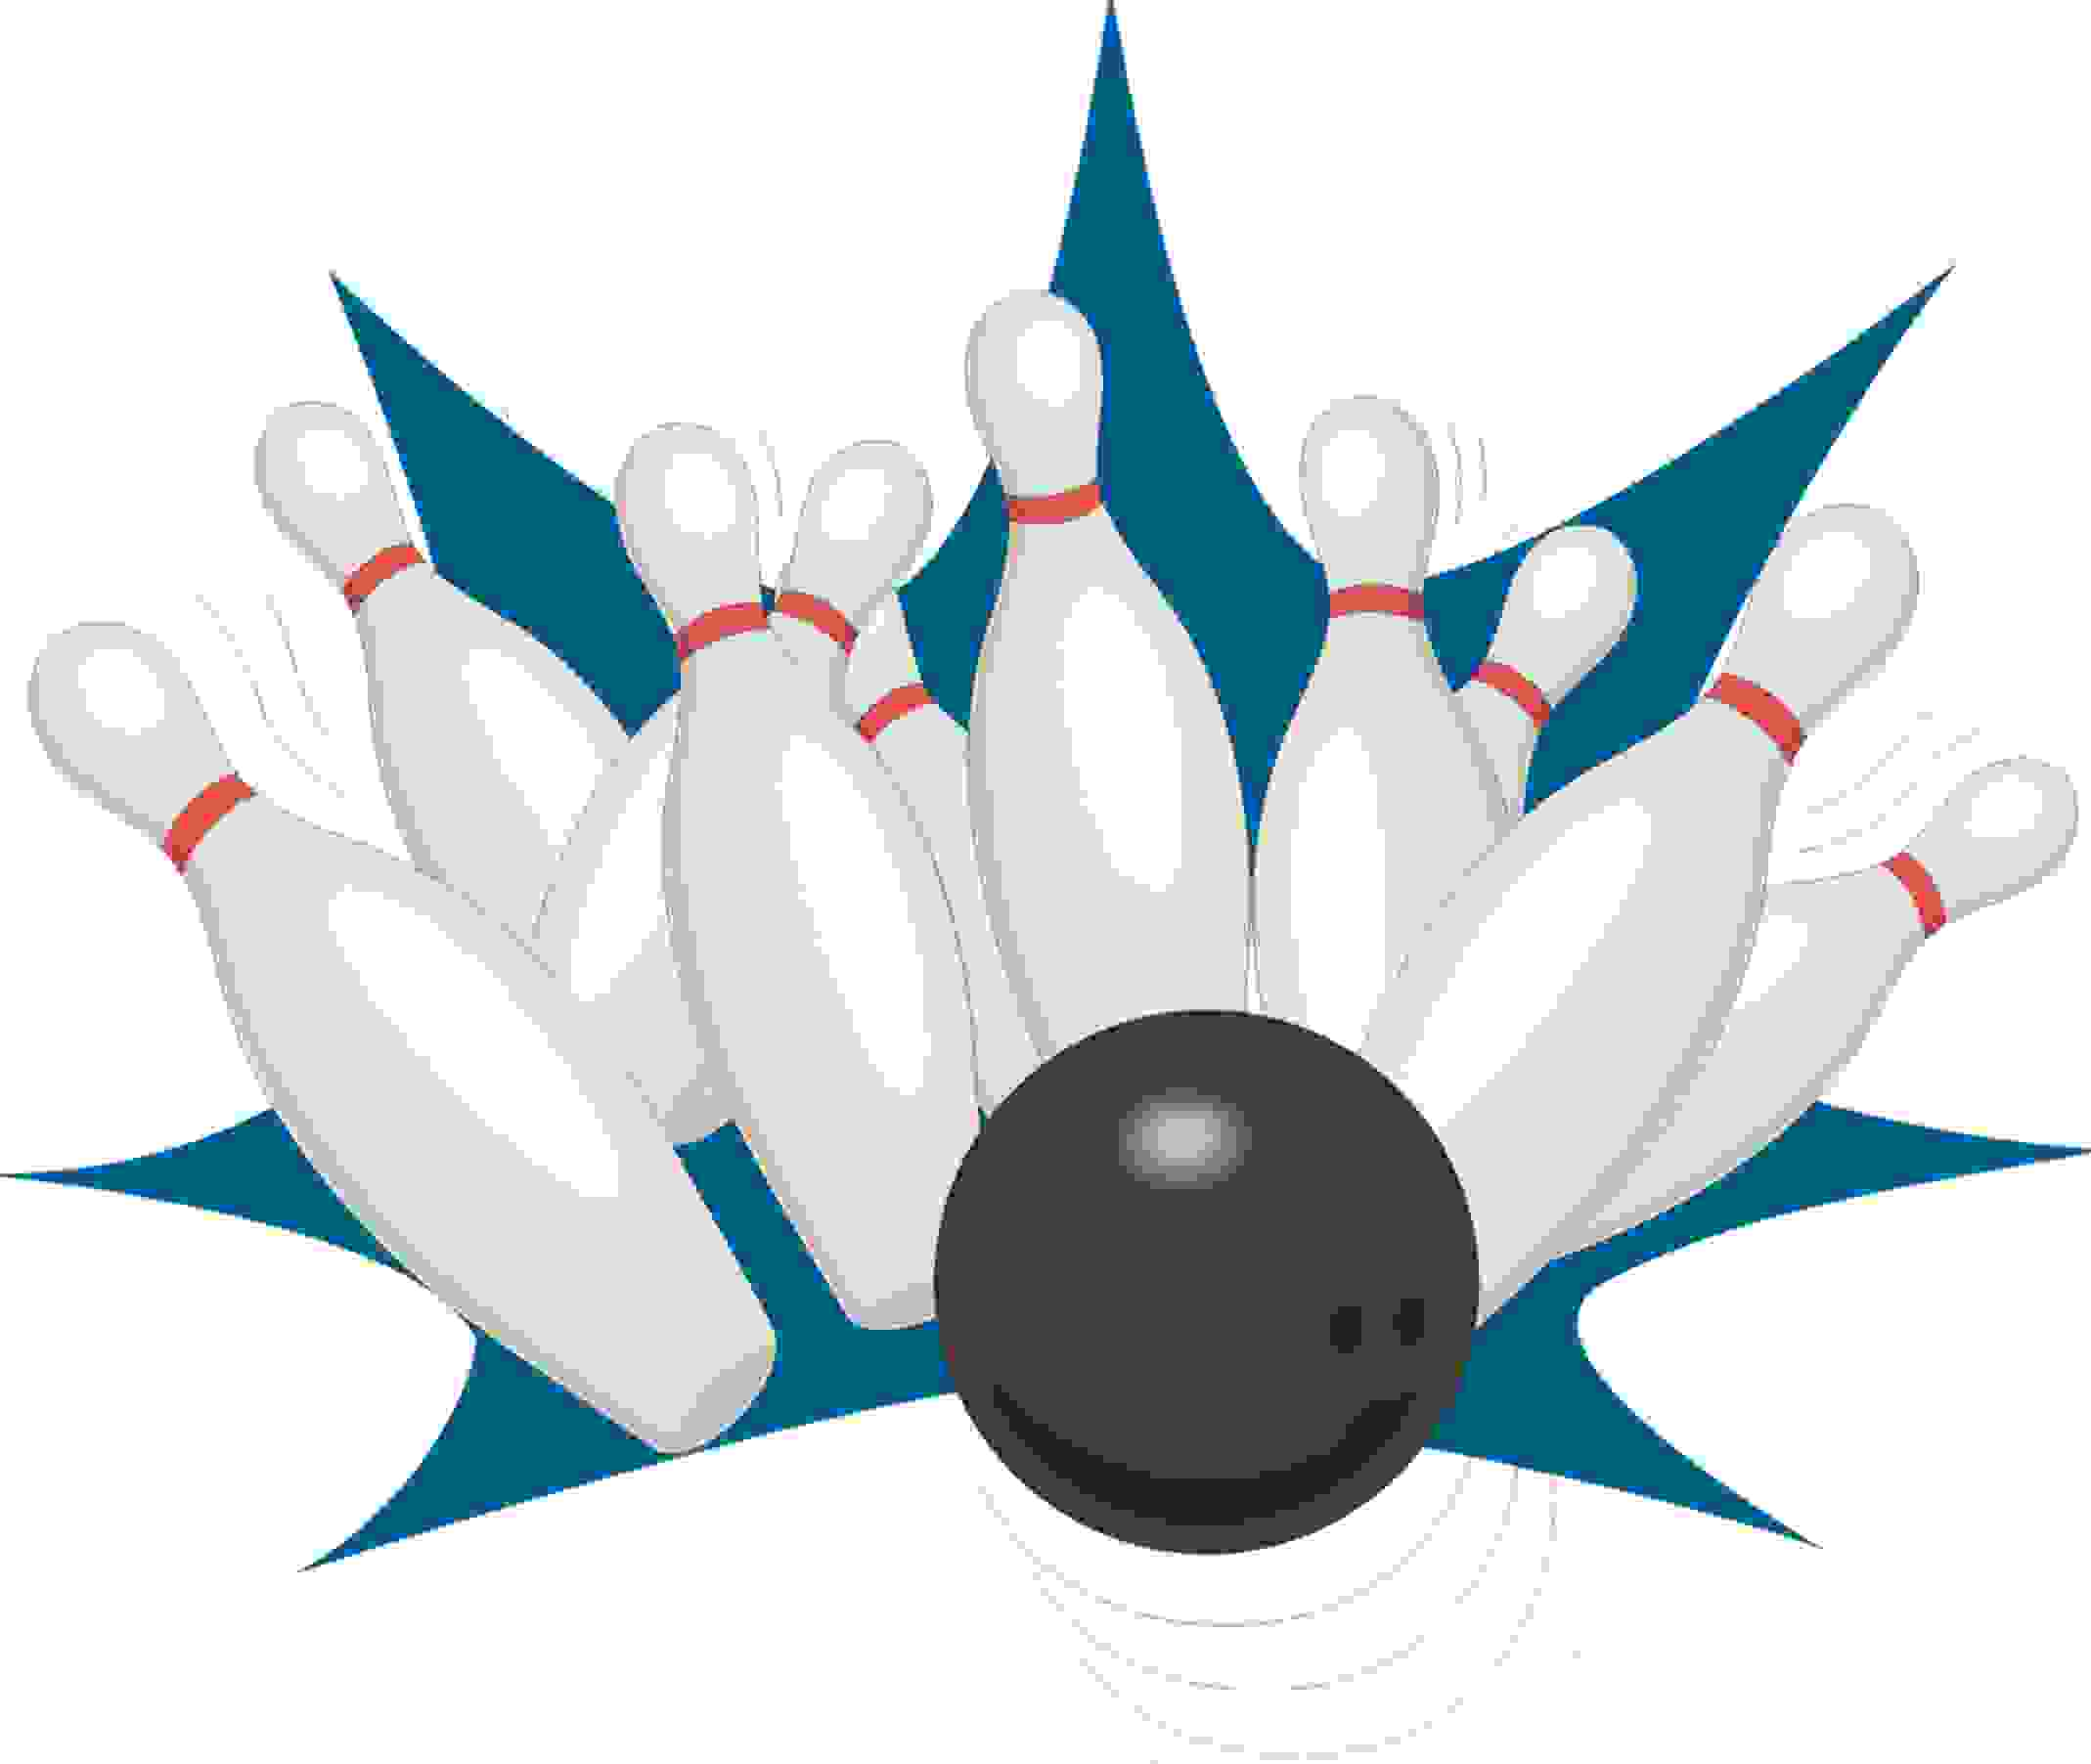 2138x1804 Bowling Alley Clipart 3 Bowling Clip Art Images Free For 2